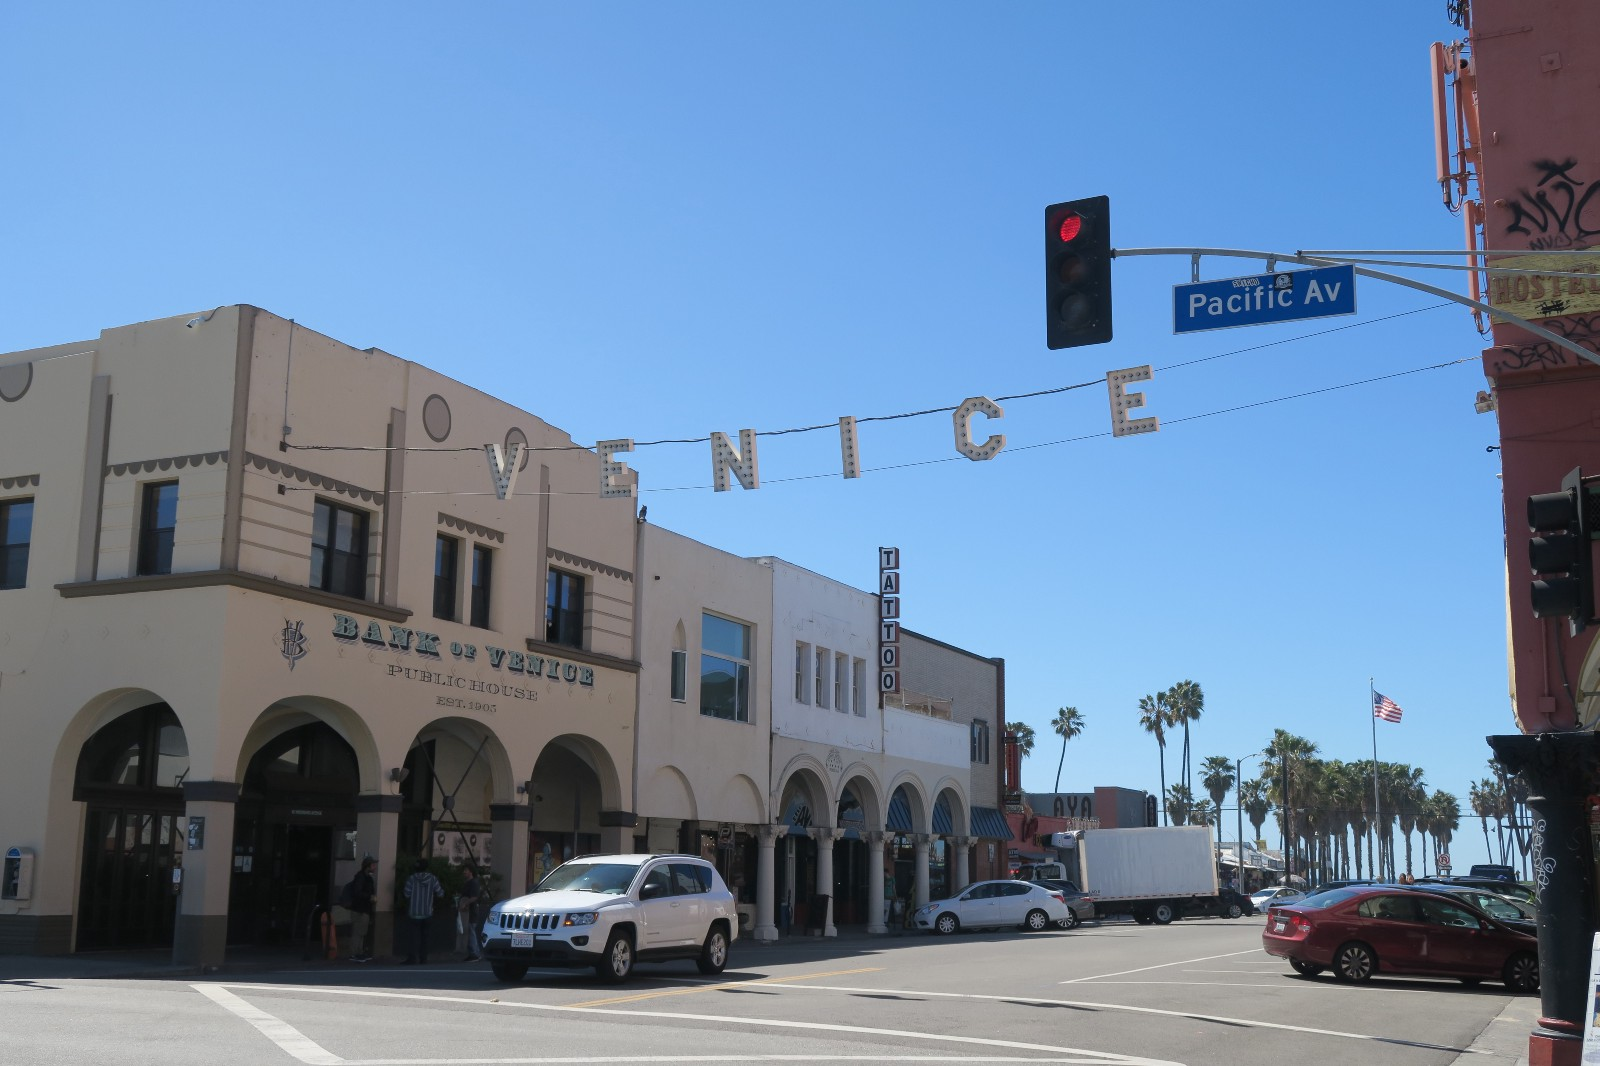 The Venice Sign